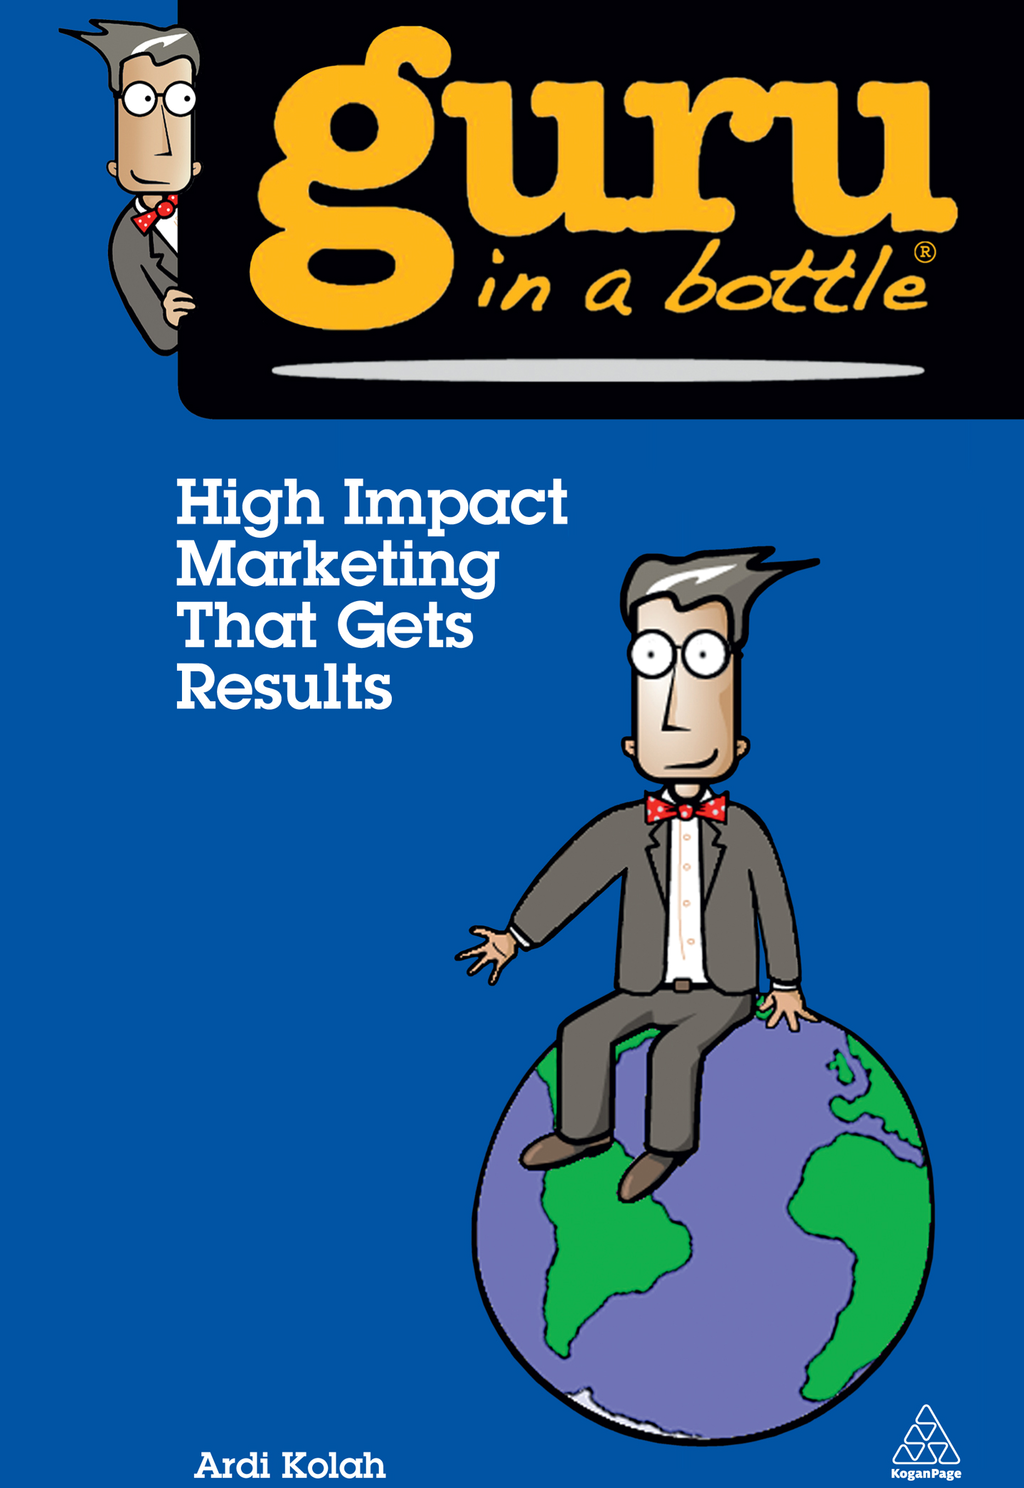 High Impact Marketing That Gets Results